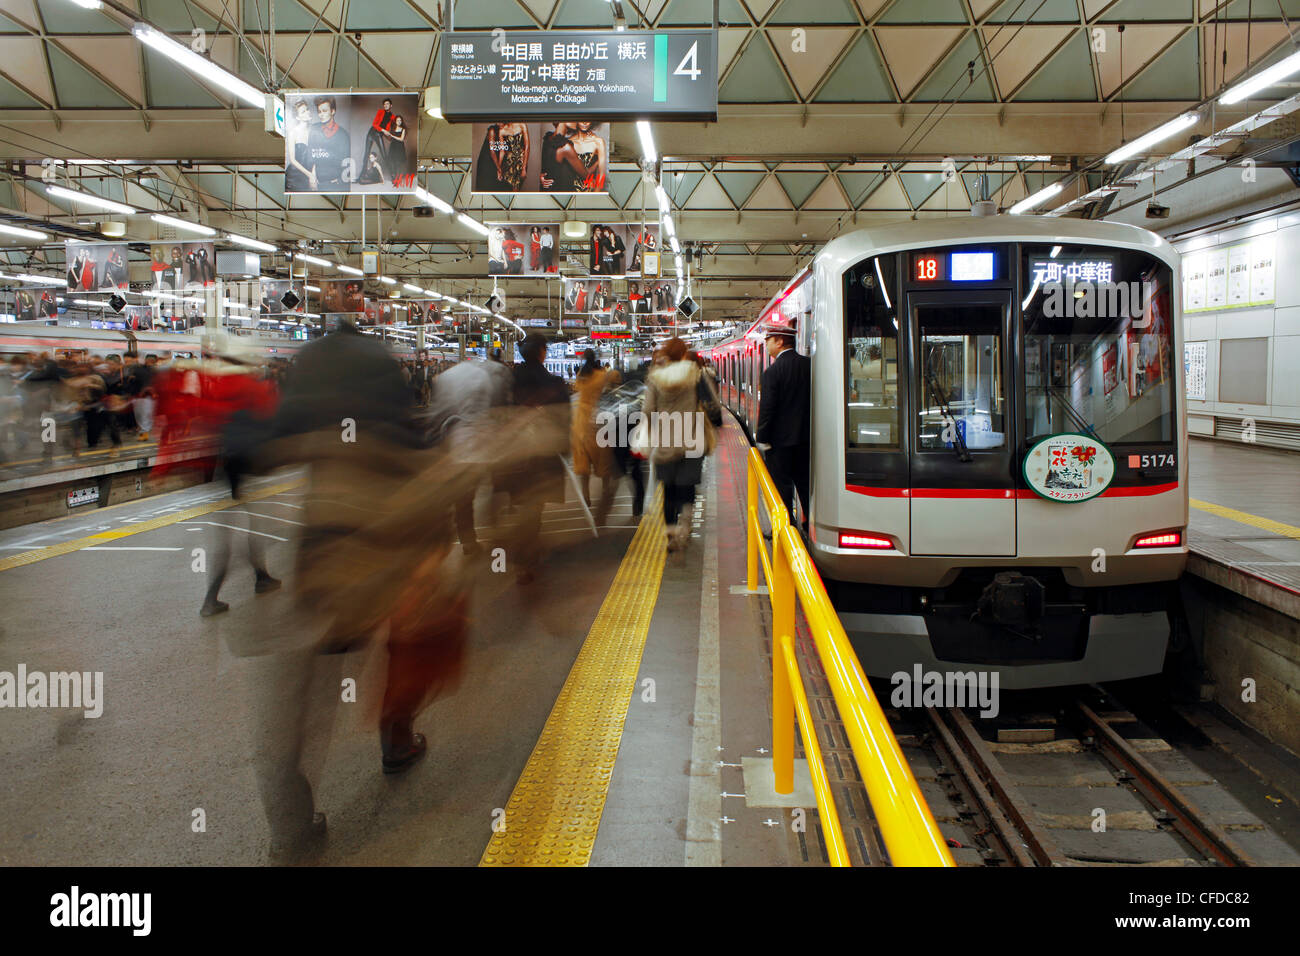 Commuters moving through Shibuya Station during rush hour, Shibuya District, Tokyo, Japan, Asia - Stock Image